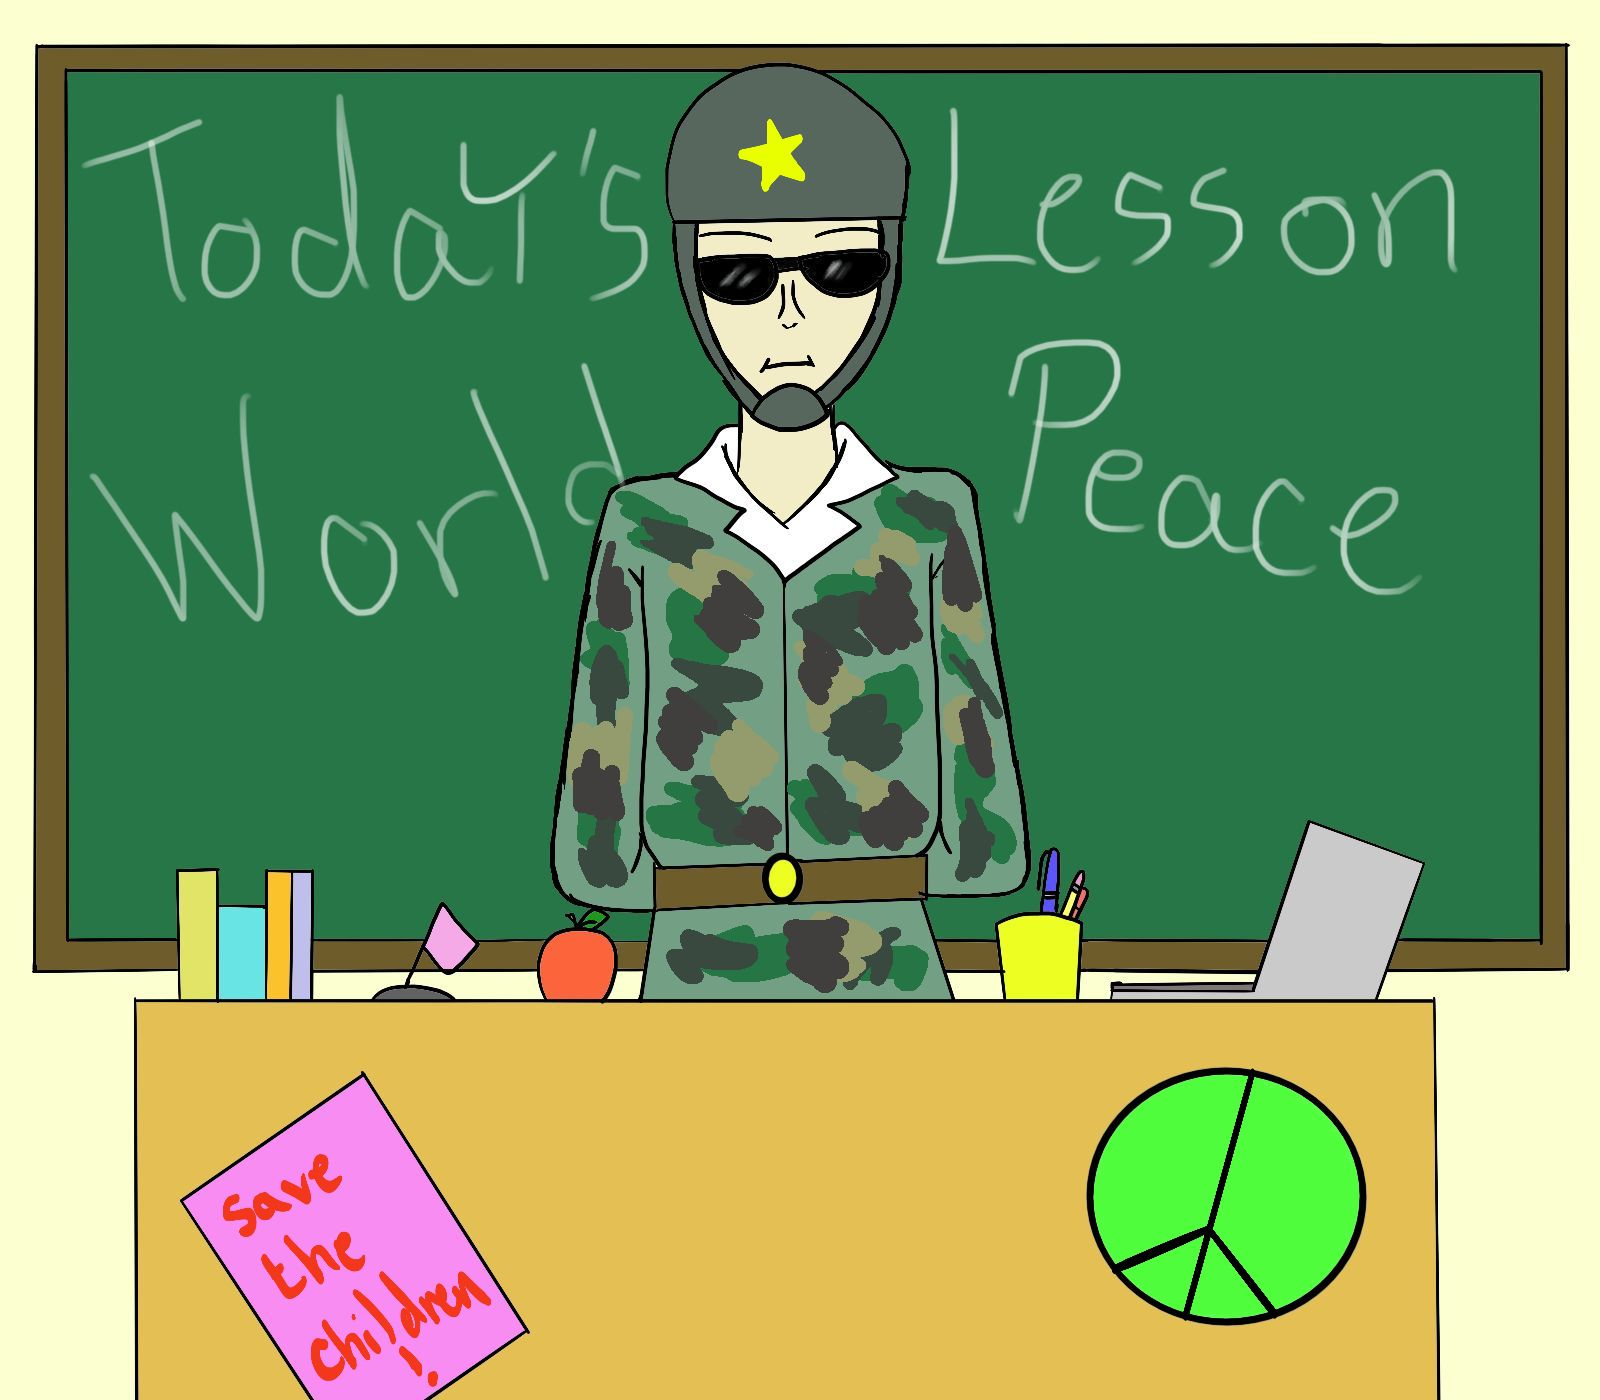 Comic of teacher dressed in camouflage and helmet sitting behind a desk with posters about the class lesson on world peace.